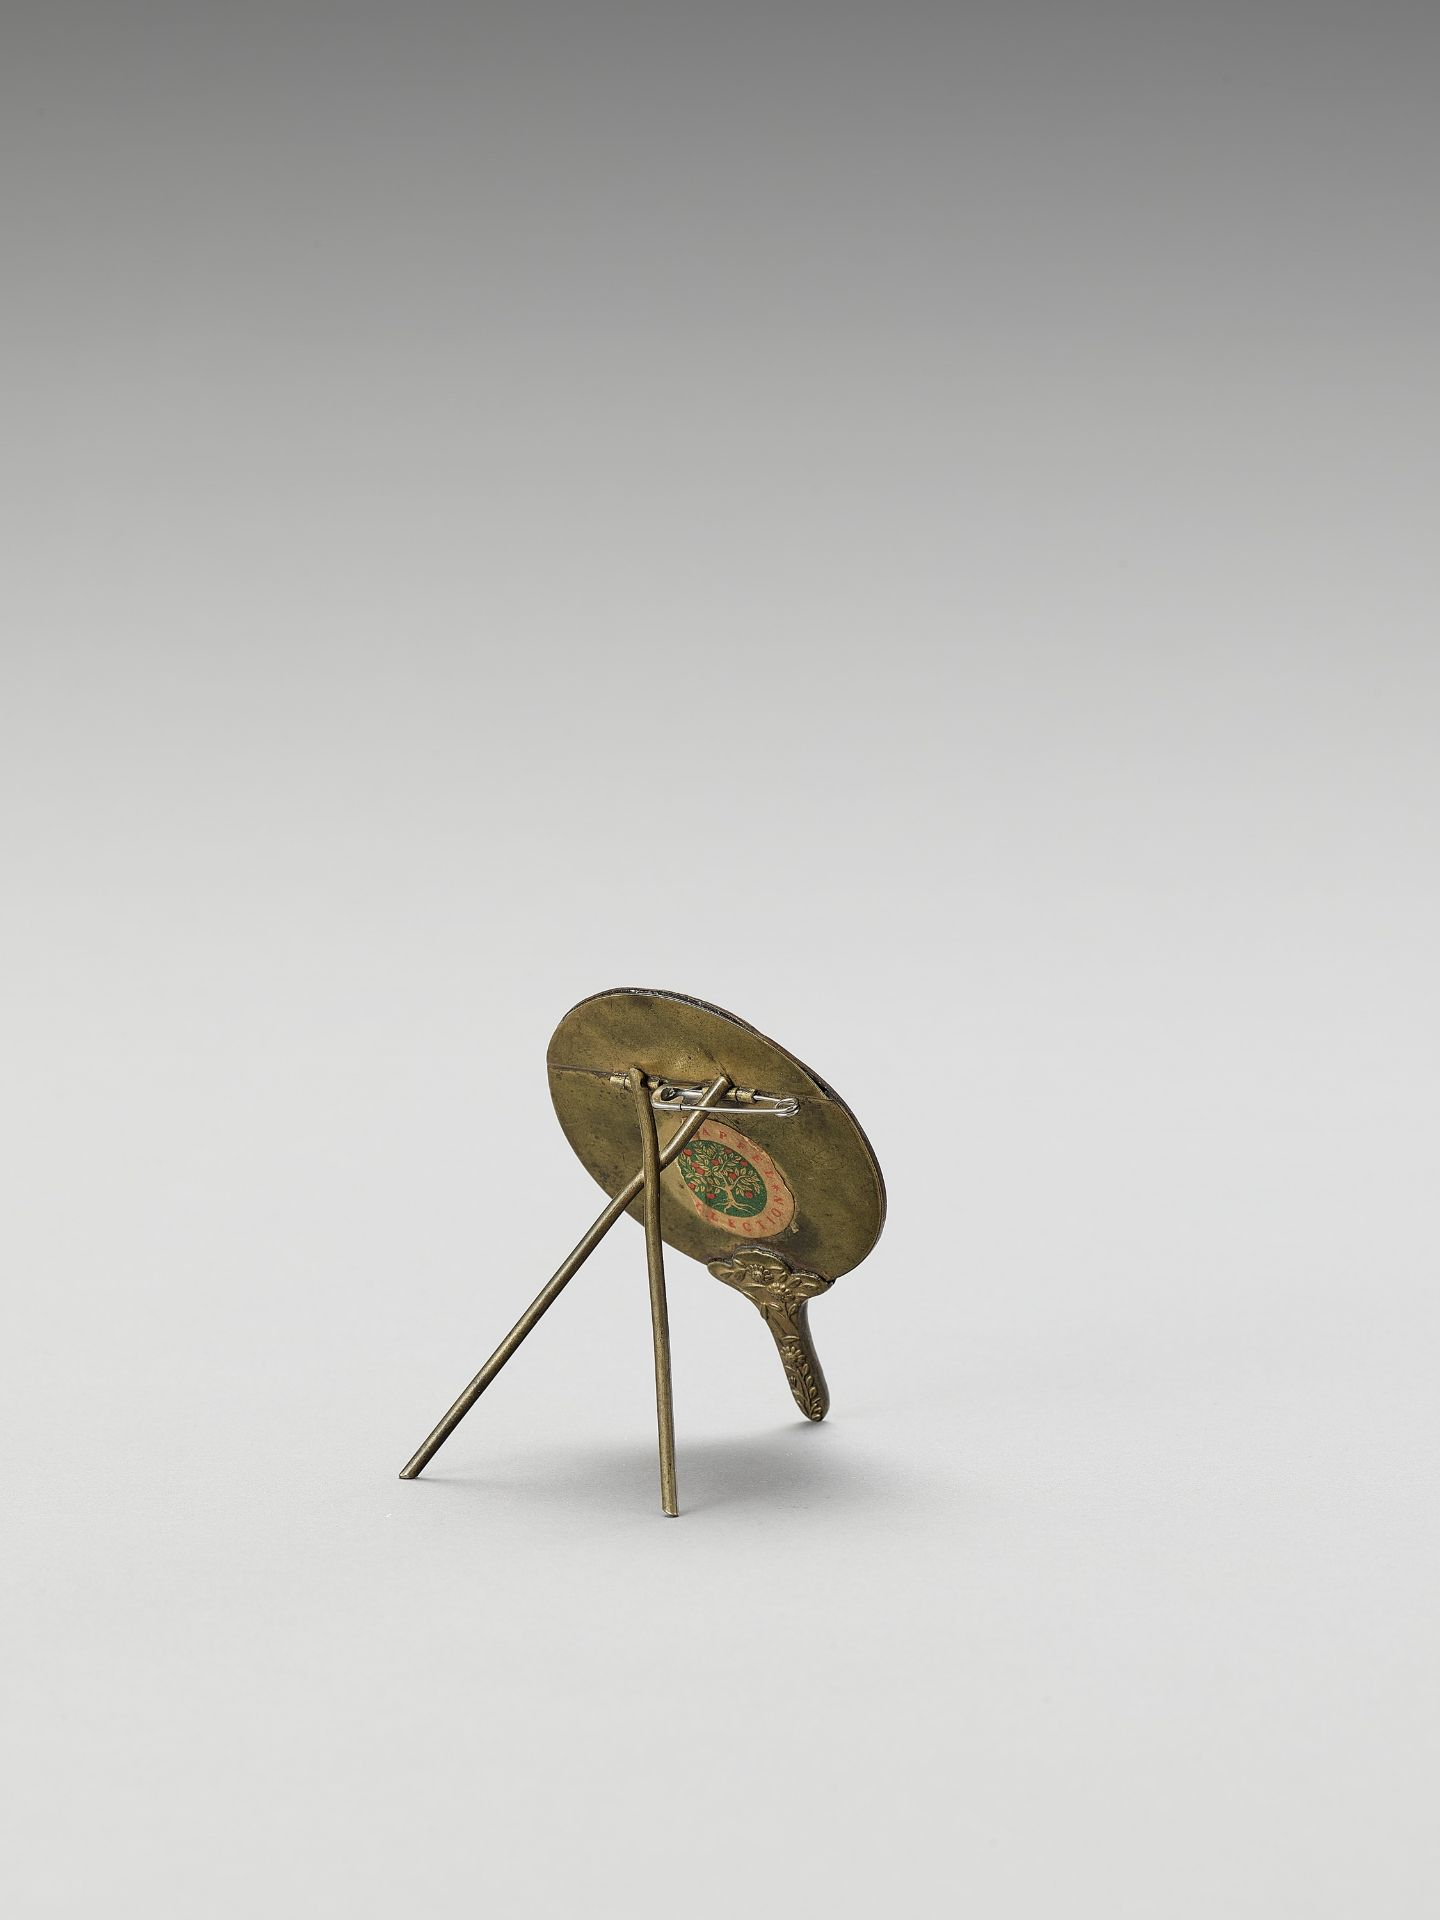 A BRONZE PLACEMENT CARD HOLDER - Image 3 of 3